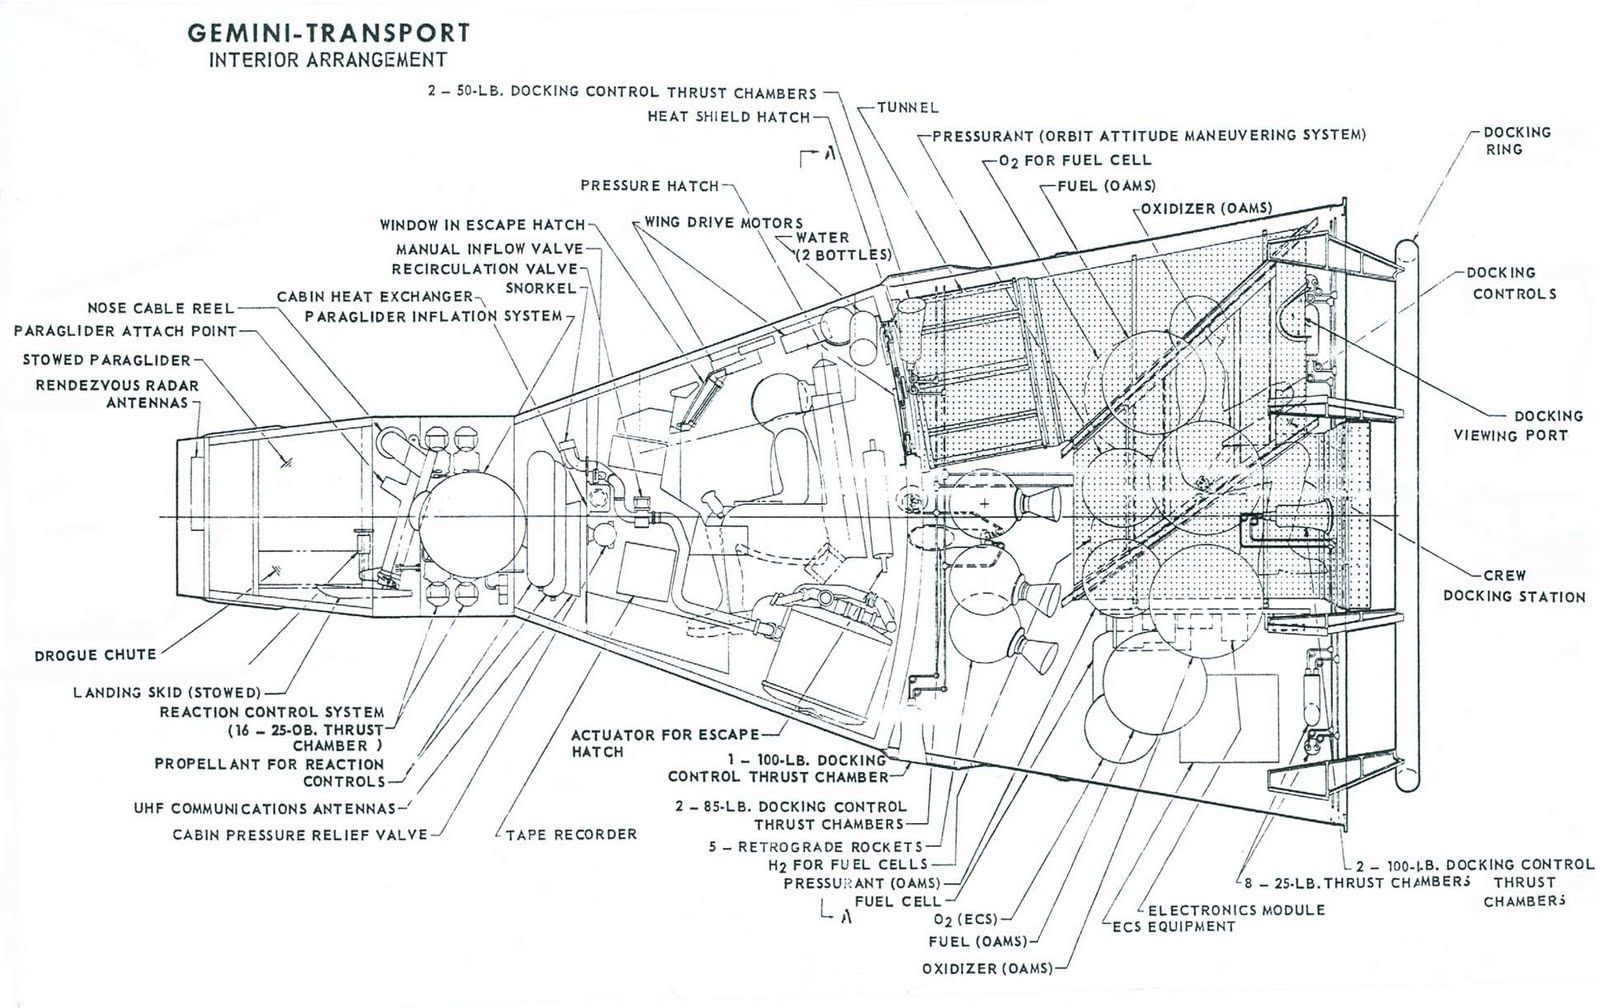 Gemini Transport Interior Arrangement Blueprint